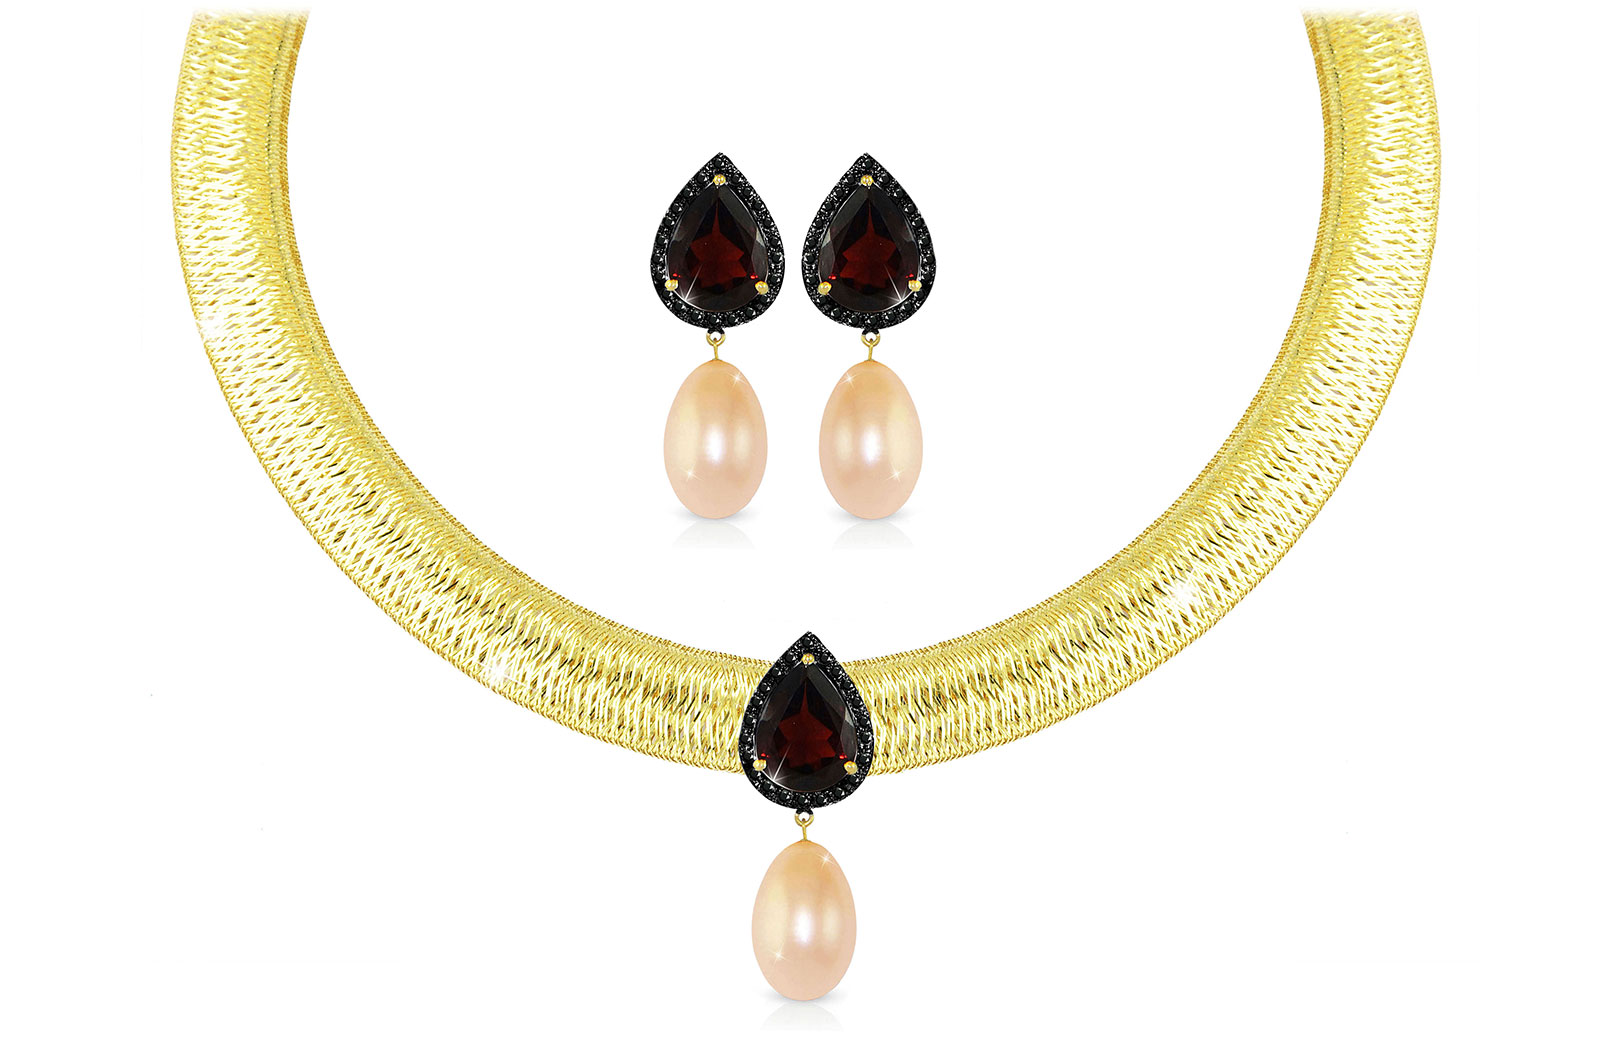 Vera Perla 18K Gold 0.36ct Black Diamonds, Garnet and 13mm Pink Pearl Jewelry Set - 2 pcs.